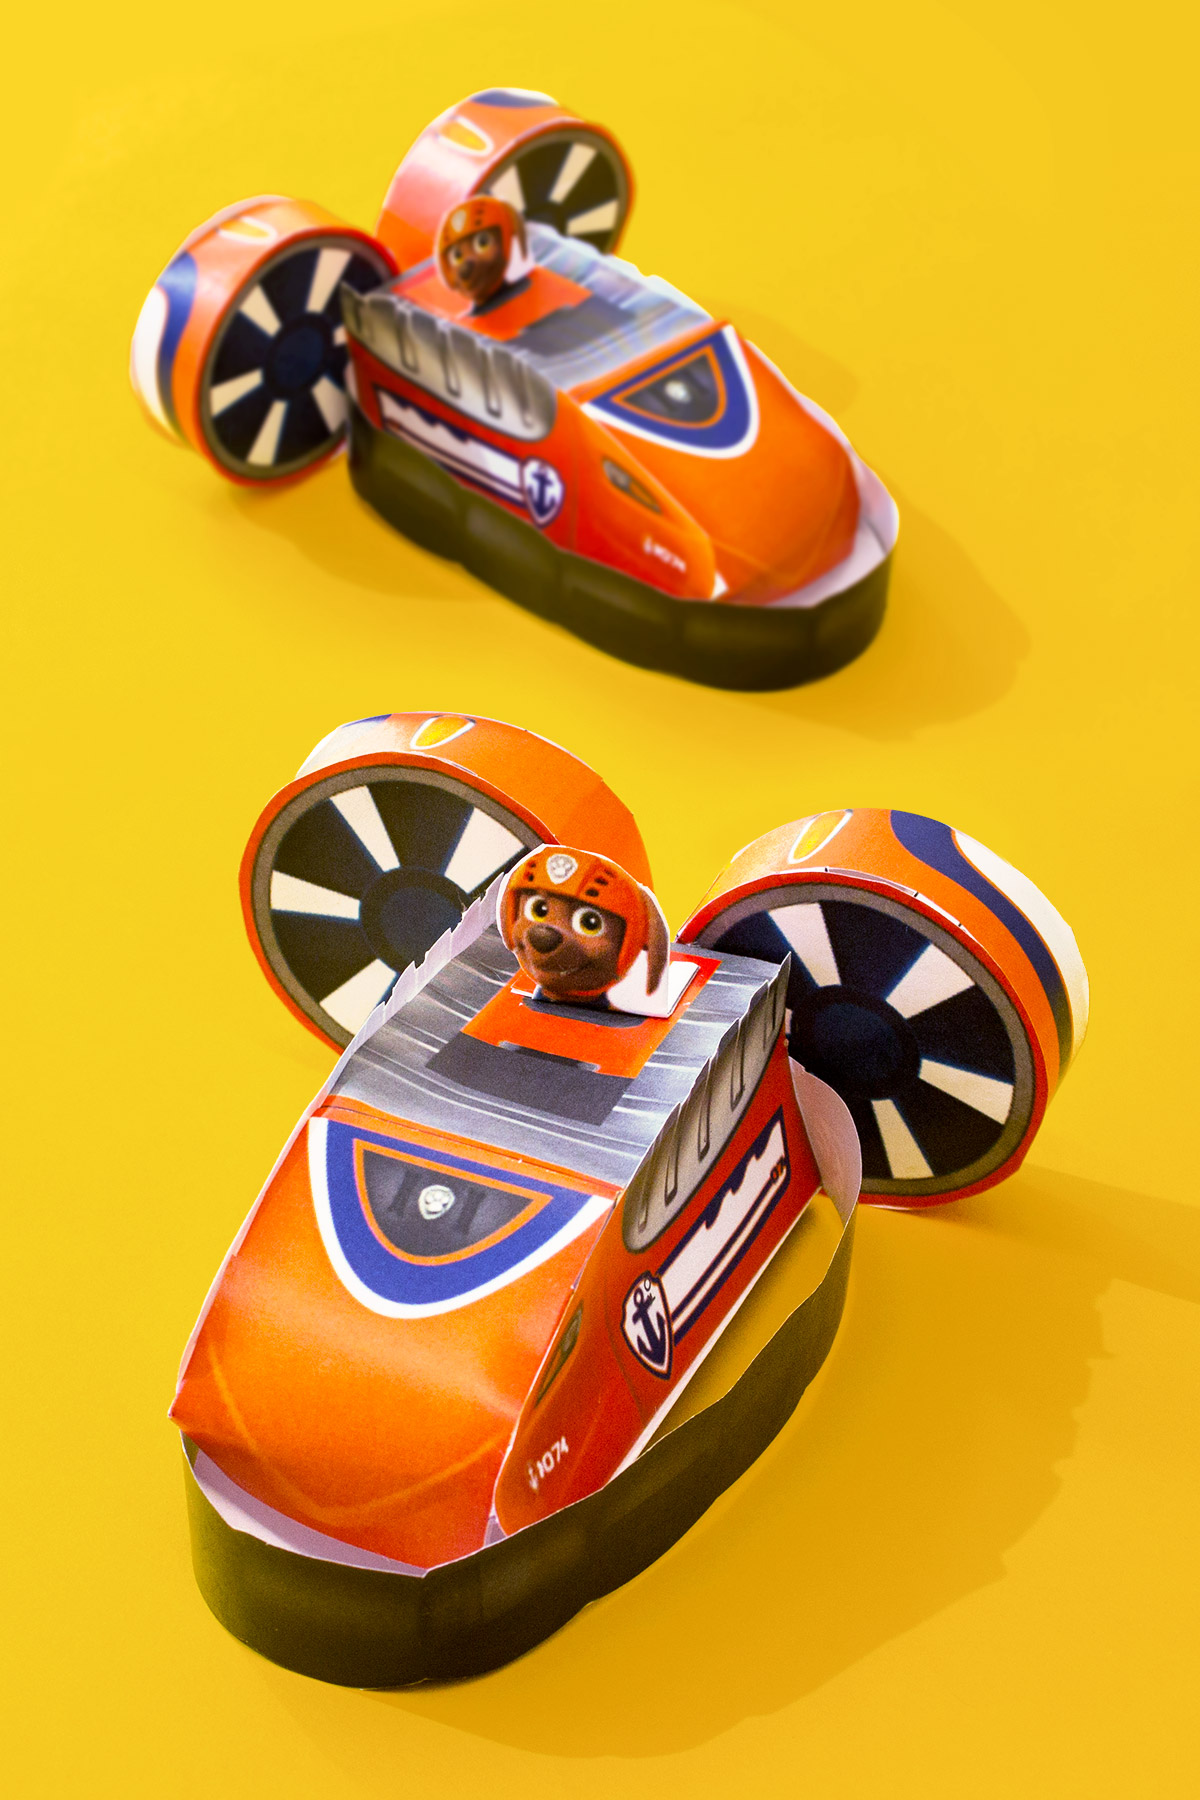 PAW Patrol Zuma Paper Vehicle Toy